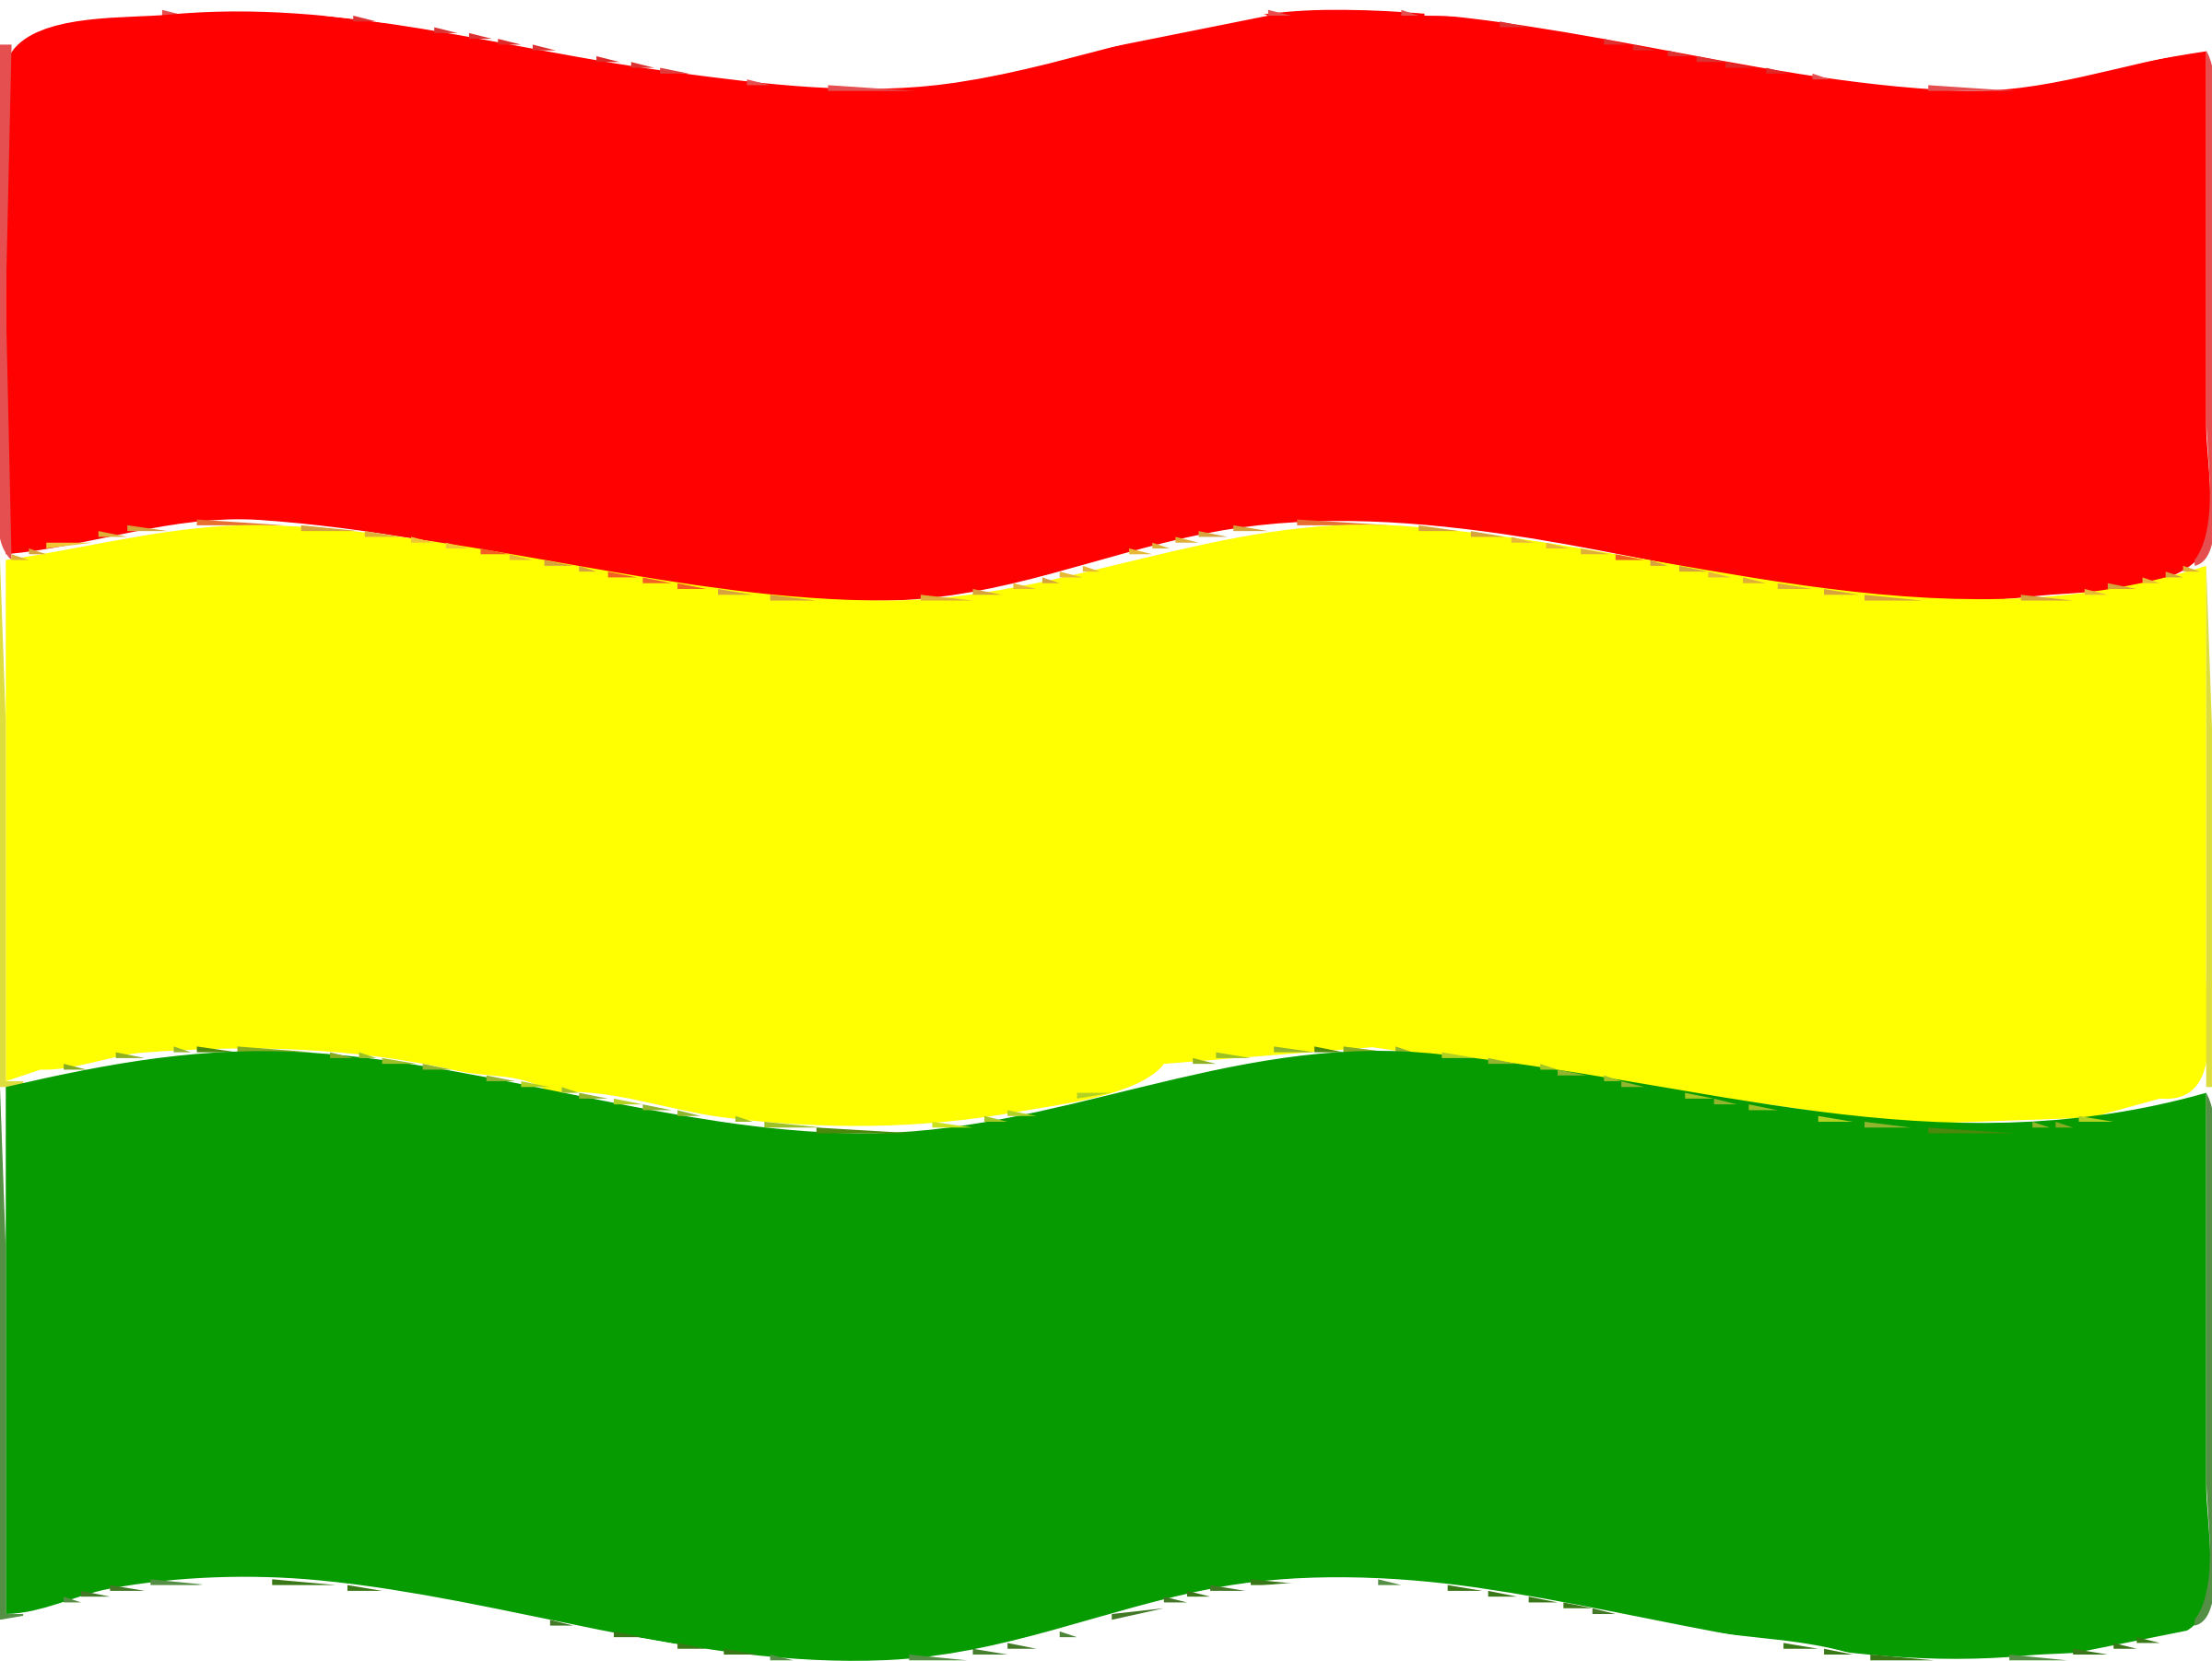 Flag of Bolivia wave by Joesph